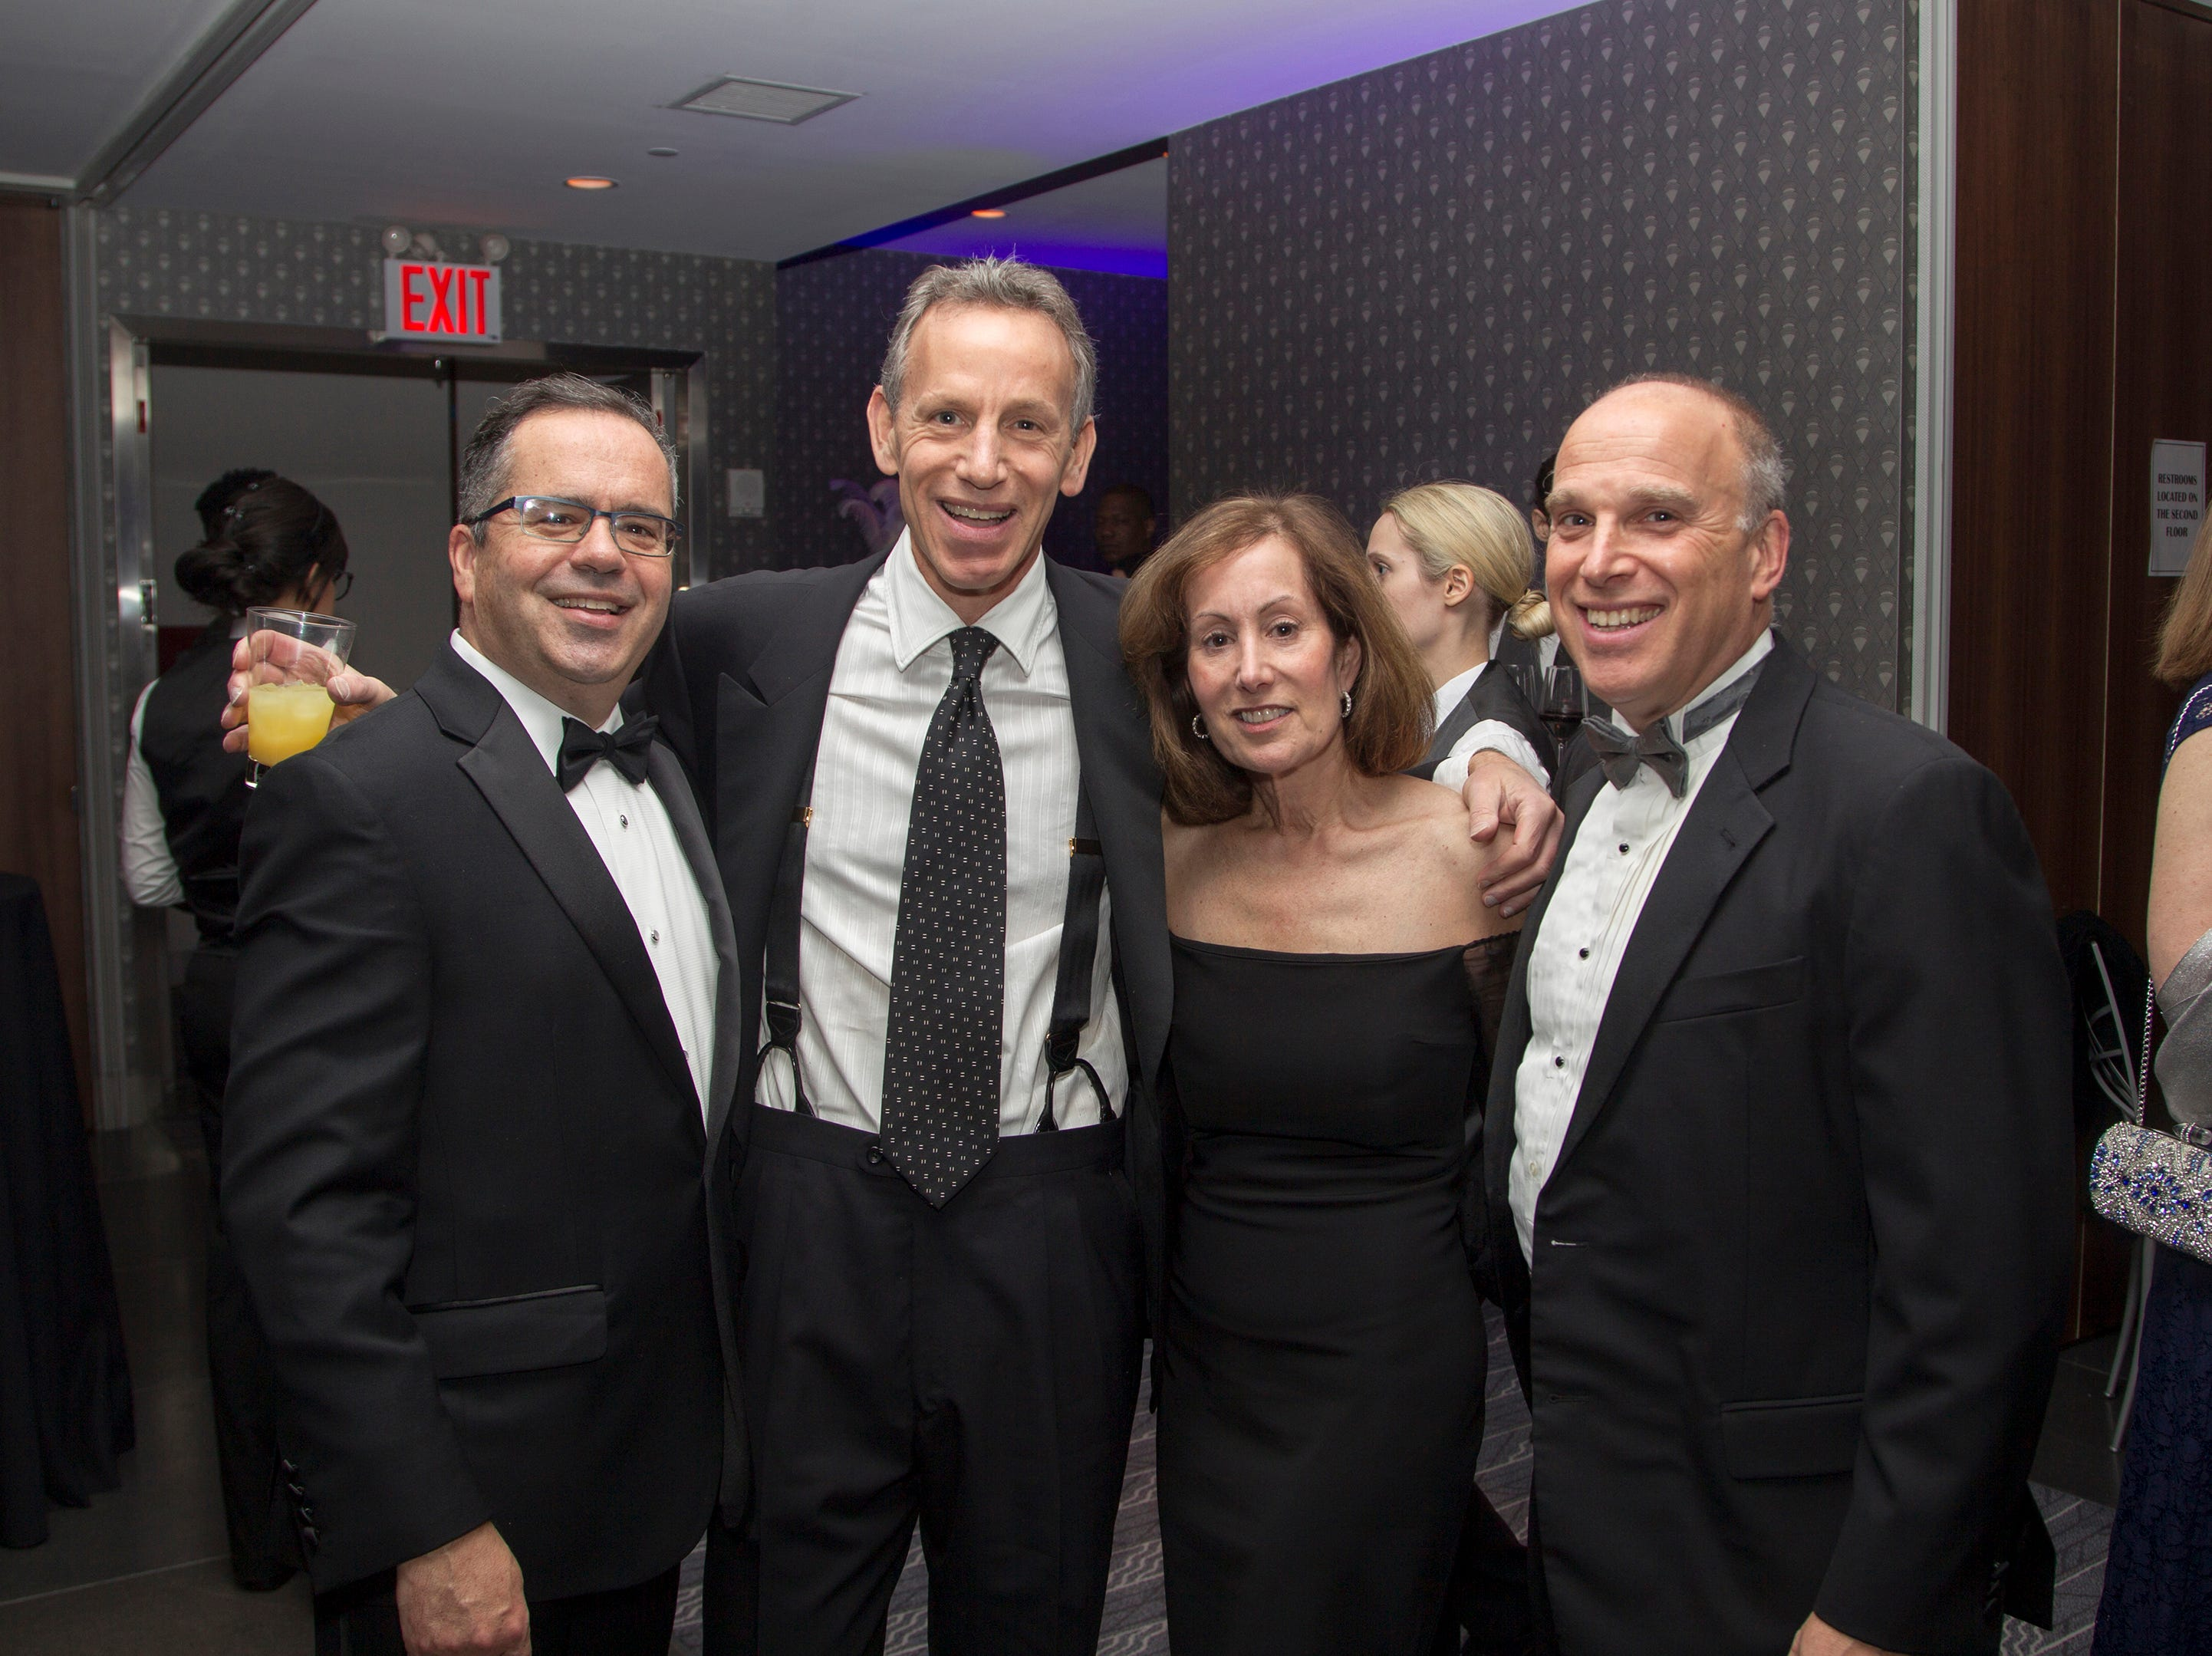 Dr. Phil Micale, Dr. Michael Schmidt, Stacie Schmidt, Dr. Adam Jarrett. Holy Name Medical Center held its 2018 Founders Ball in NYC at Ziegfeld Ballroom. 11/17/2018